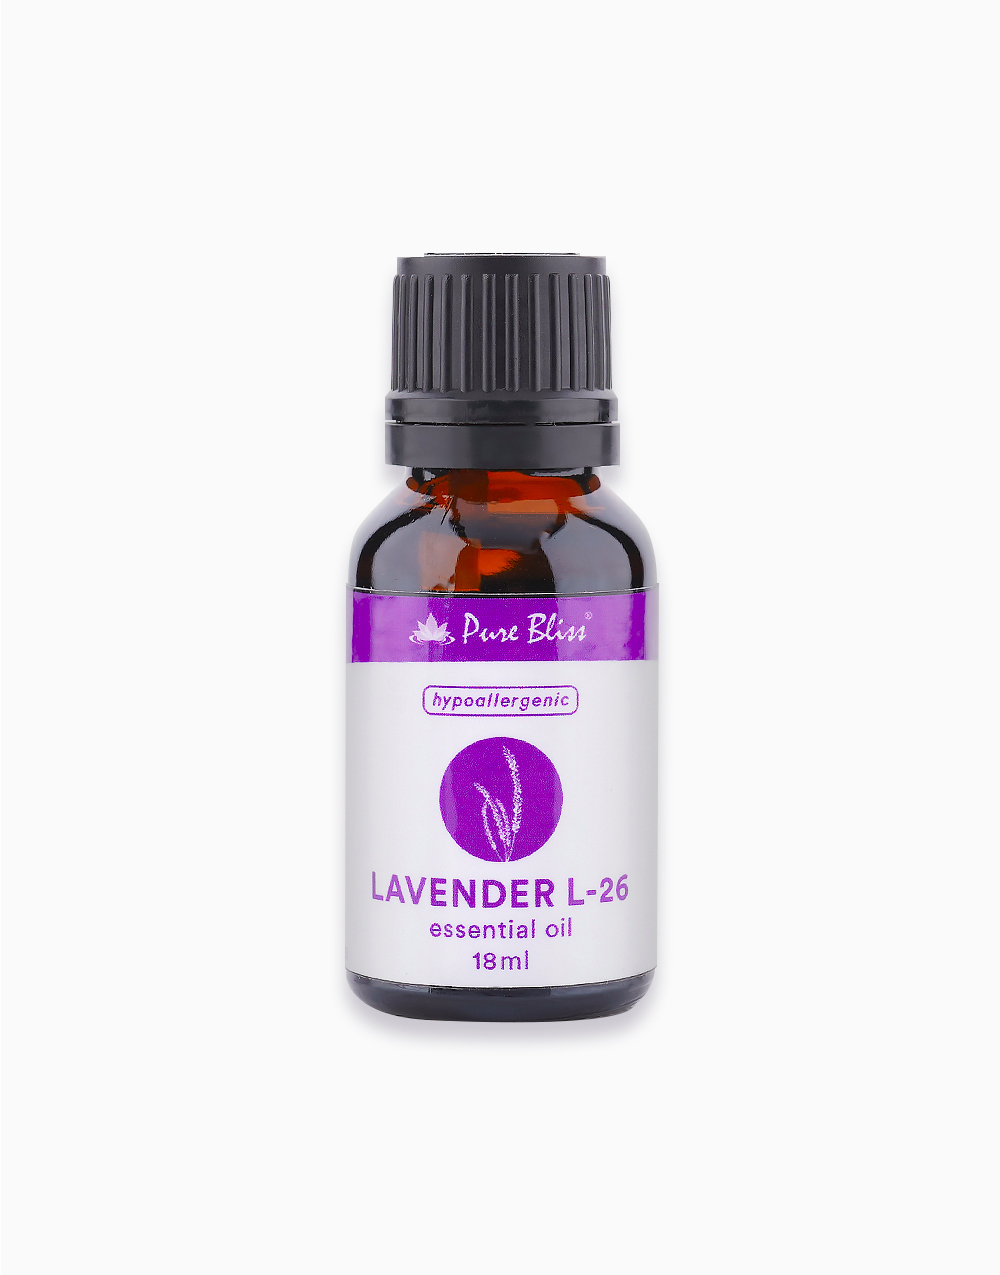 Hypoallergenic Lavender L-26 Essential Oil 18ml by Pure Bliss